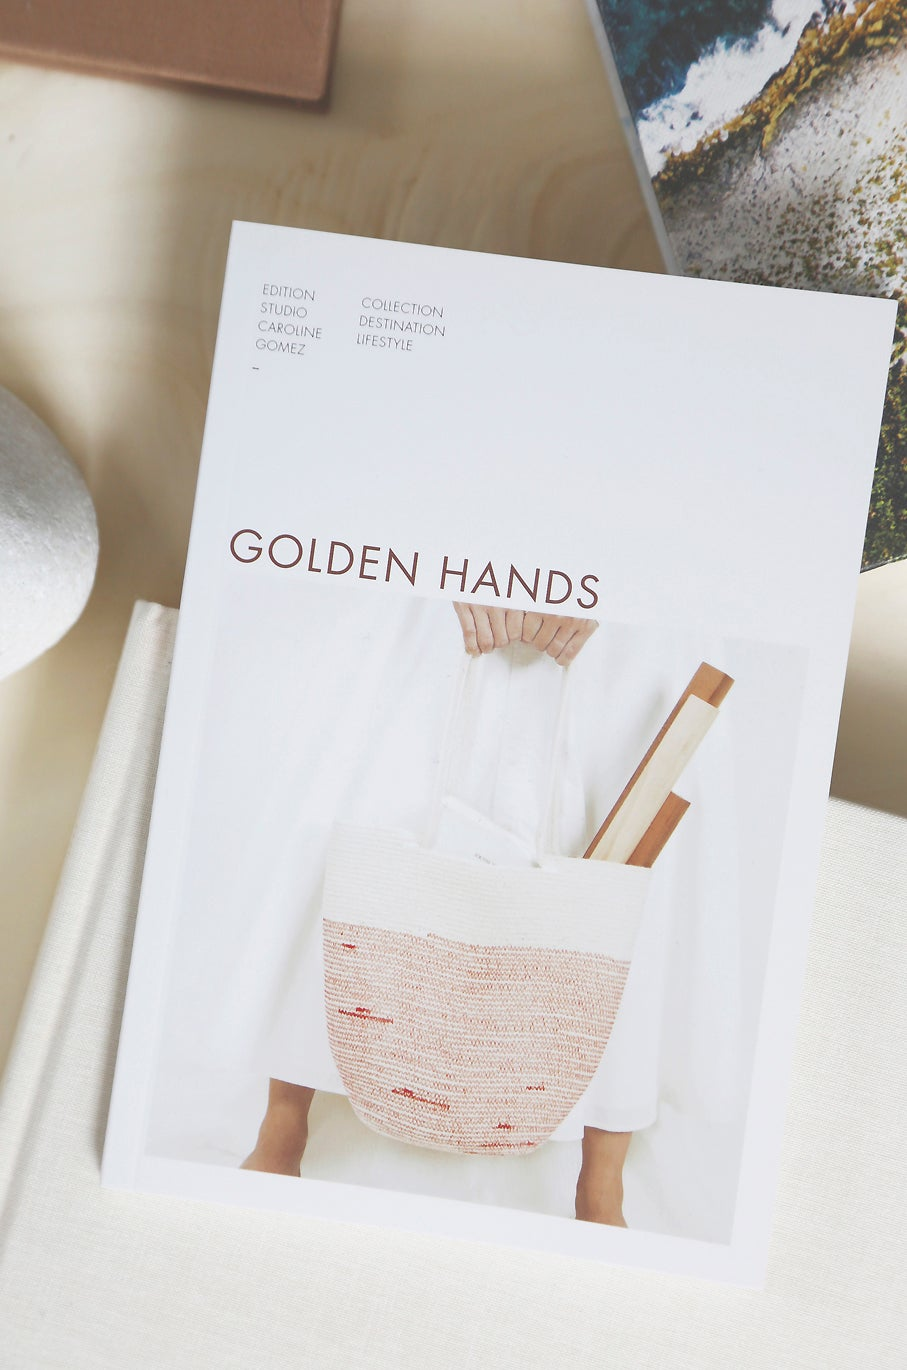 Image of Golden Hands